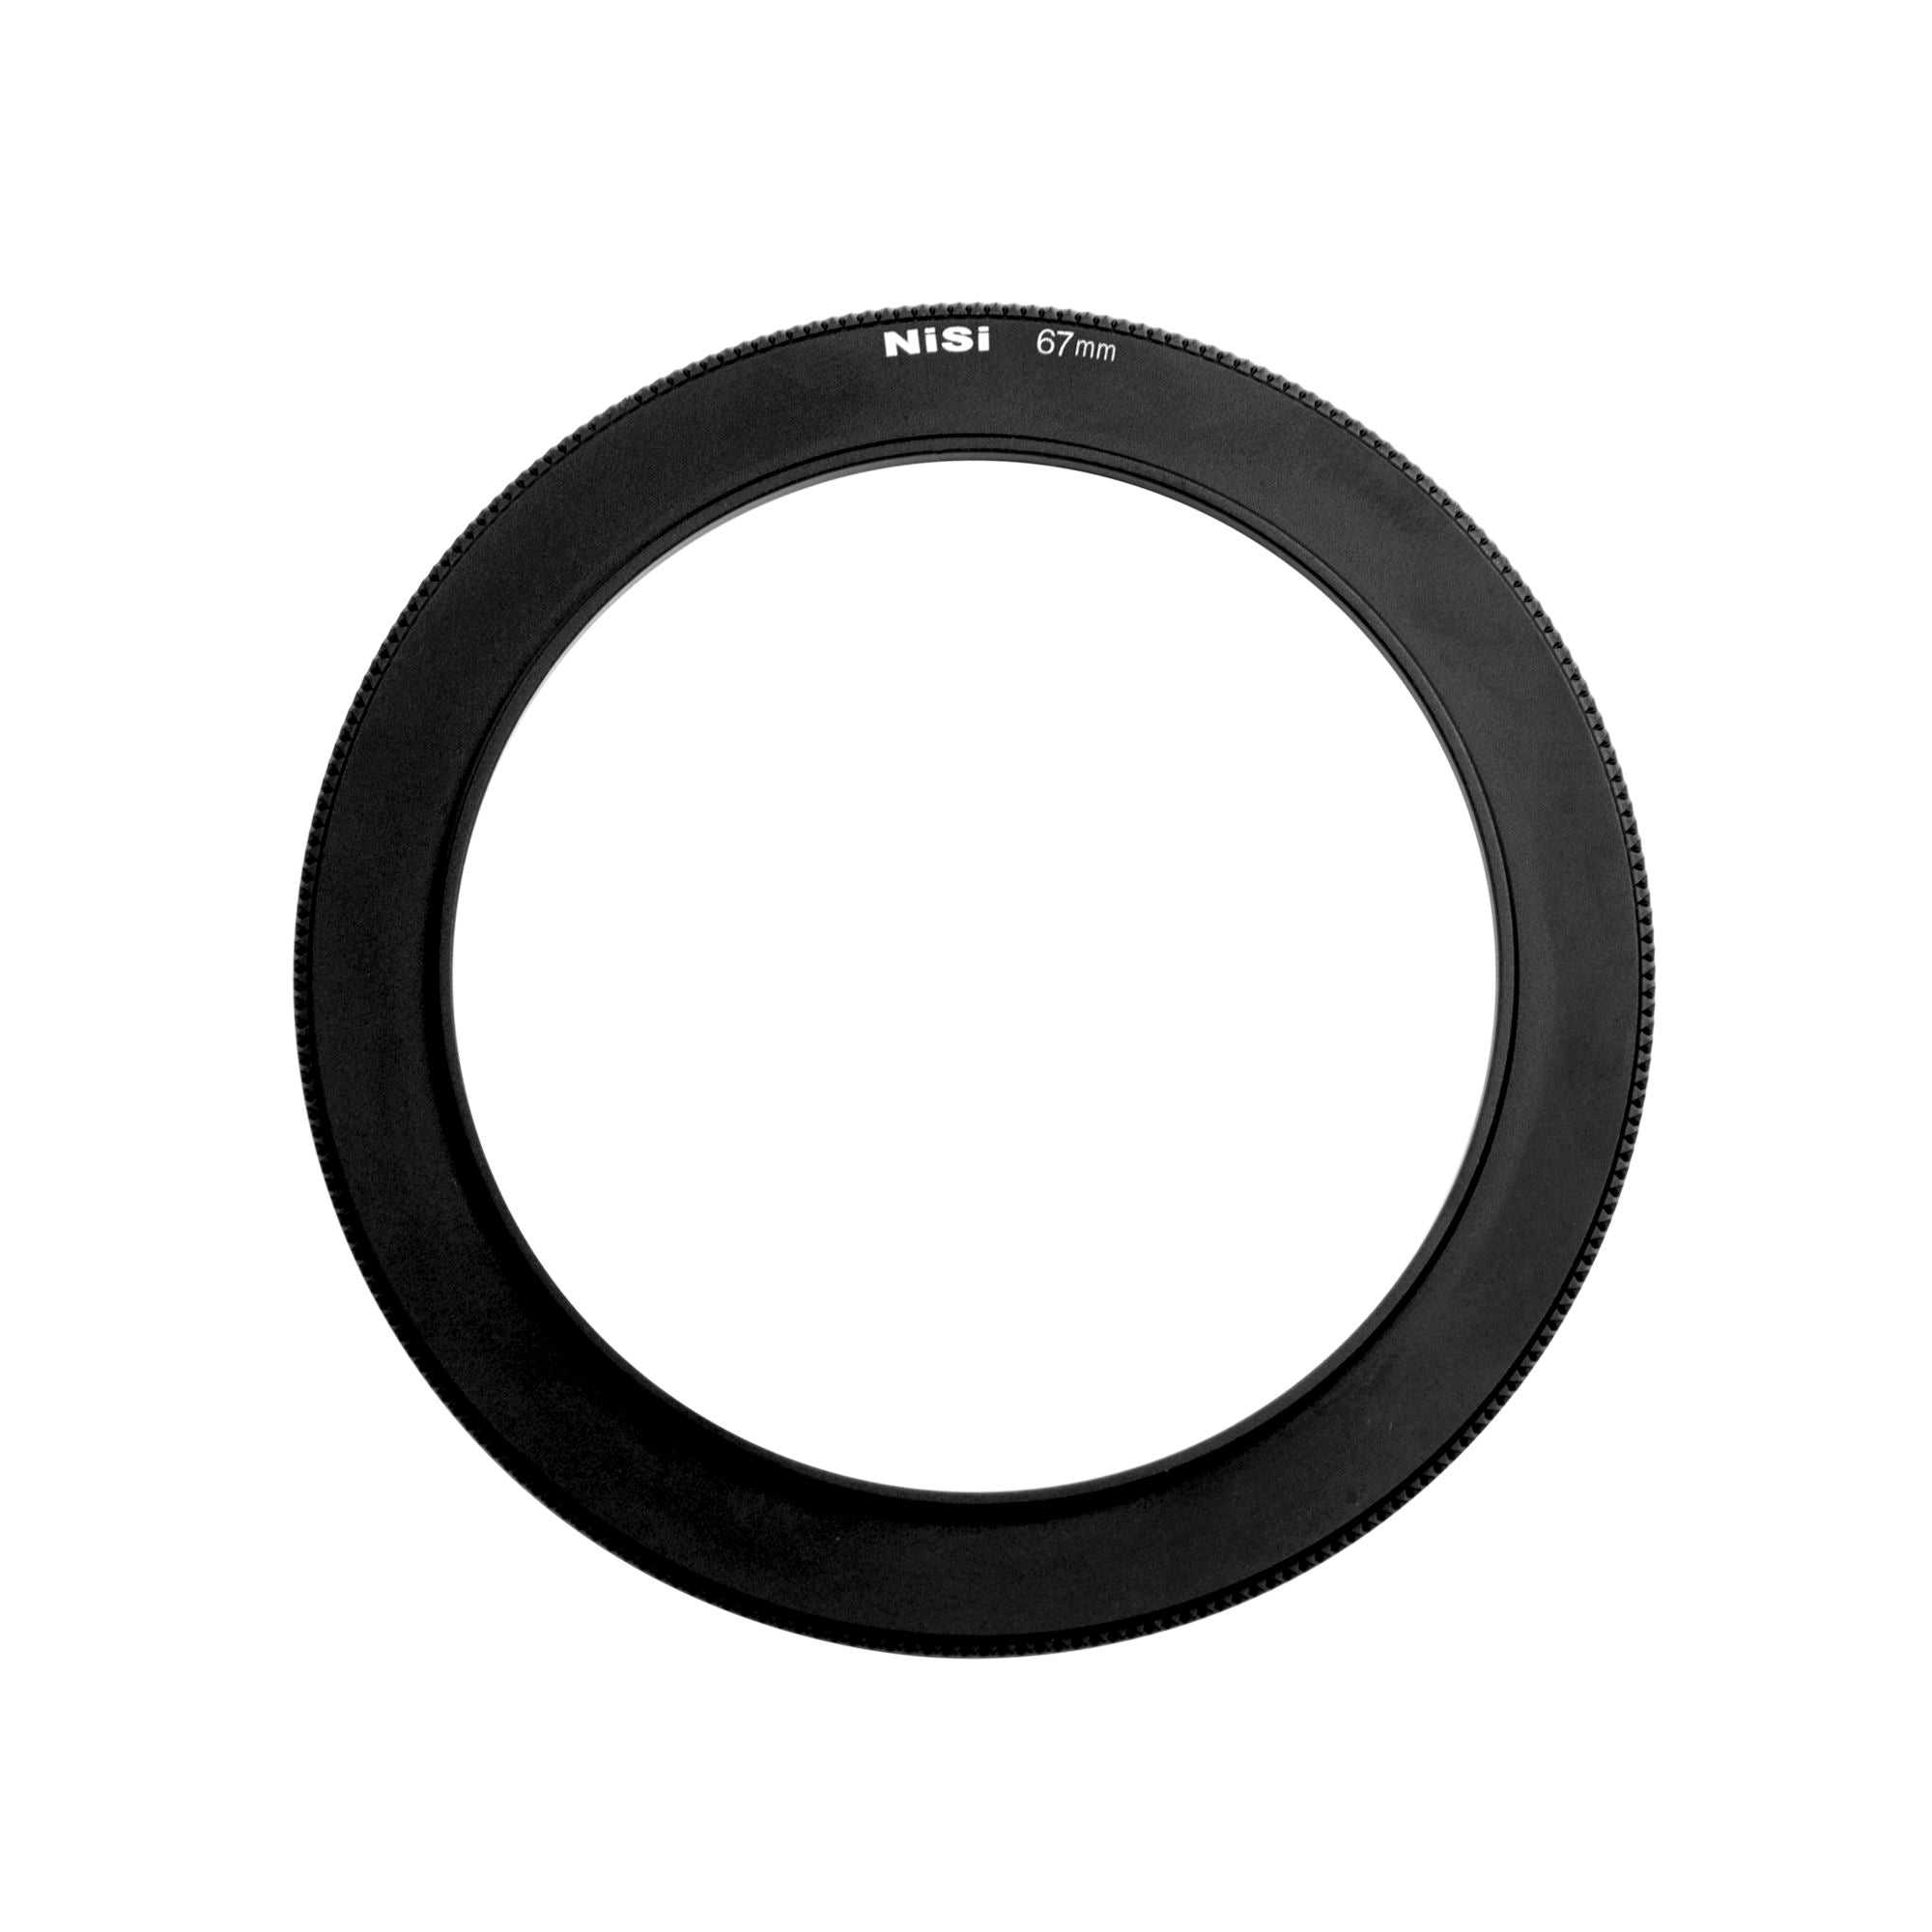 NiSi 67mm adaptor Ring  for NiSi 100mm V5-ALPHA/V5/V5 Pro/C4 Holder